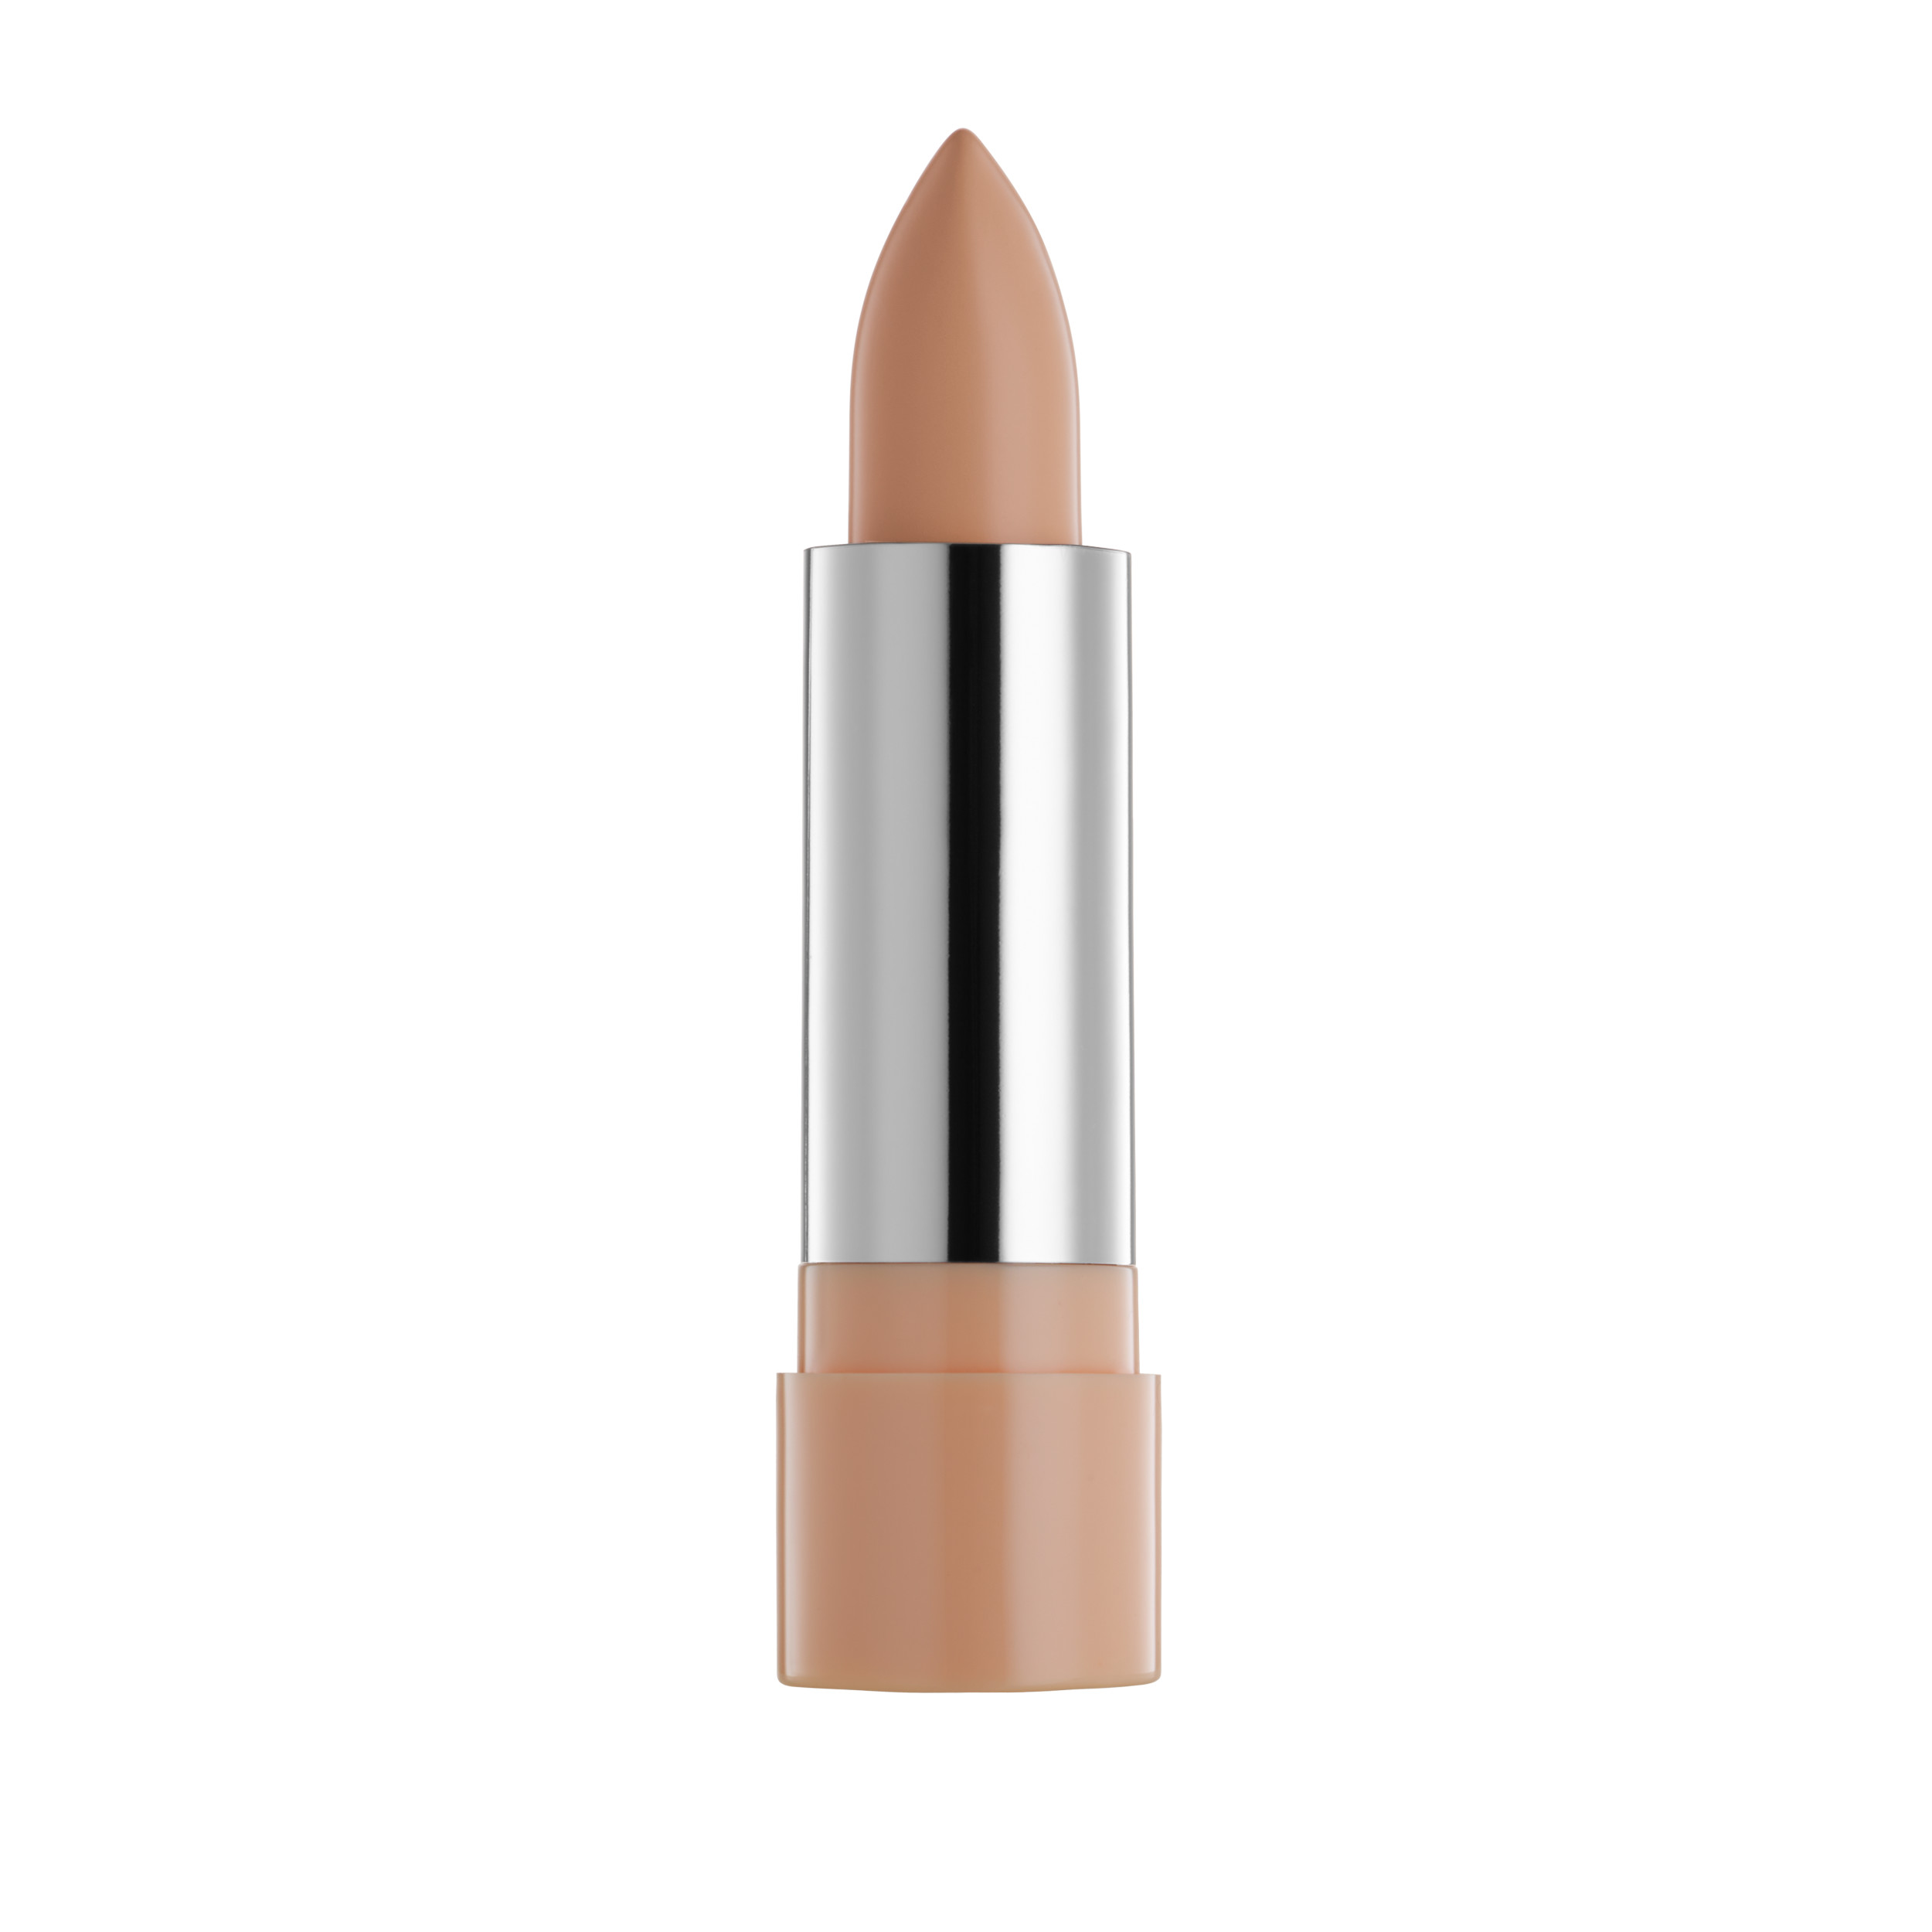 Physicians Formula Gentle Cover® Concealer Stick, Light by Physicians Formula